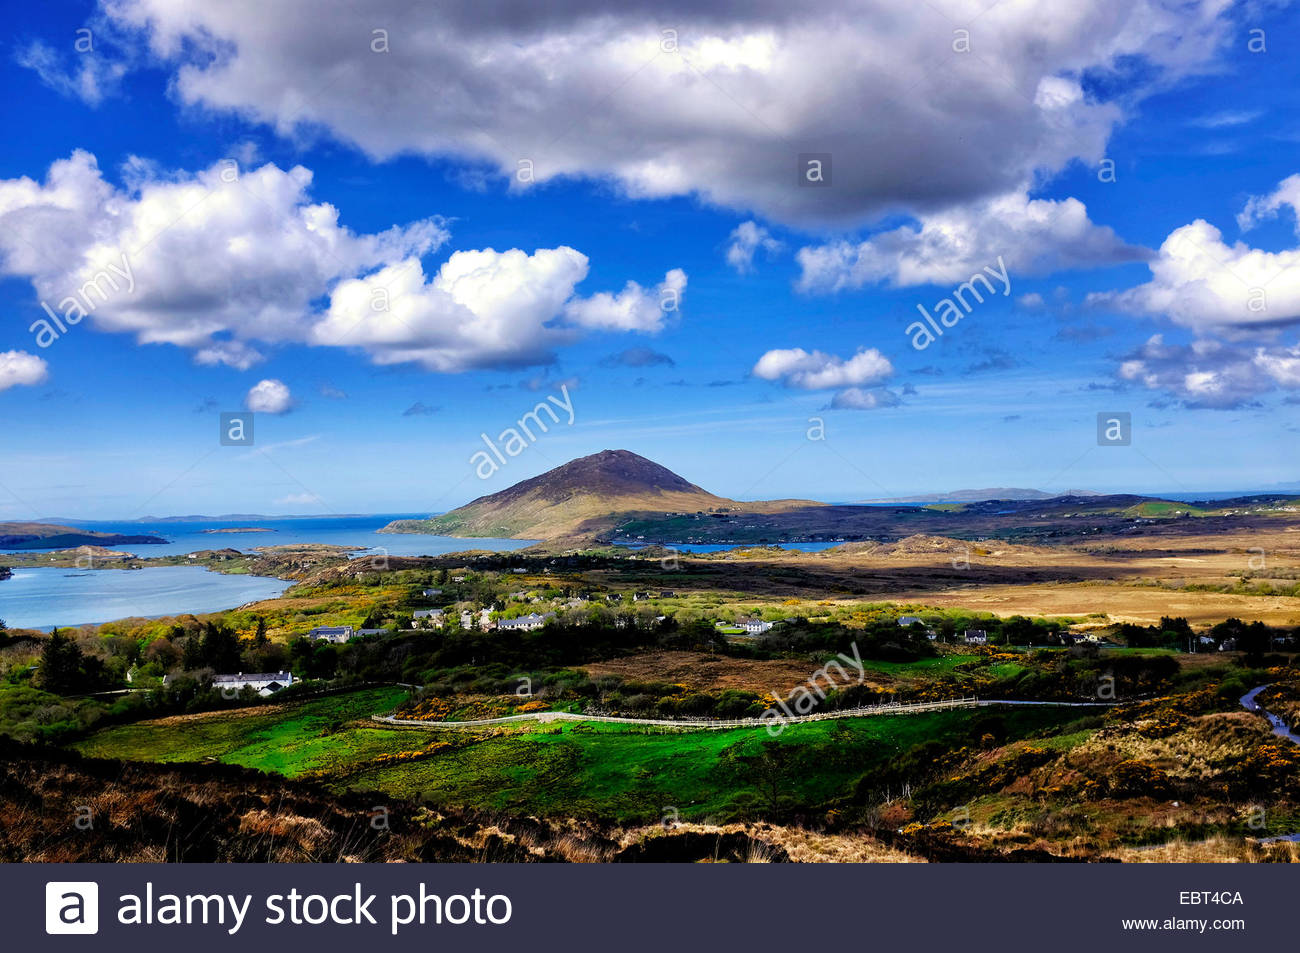 View of Tully mountain from the Connemara National Park, County Galway, Ireland - Stock Image